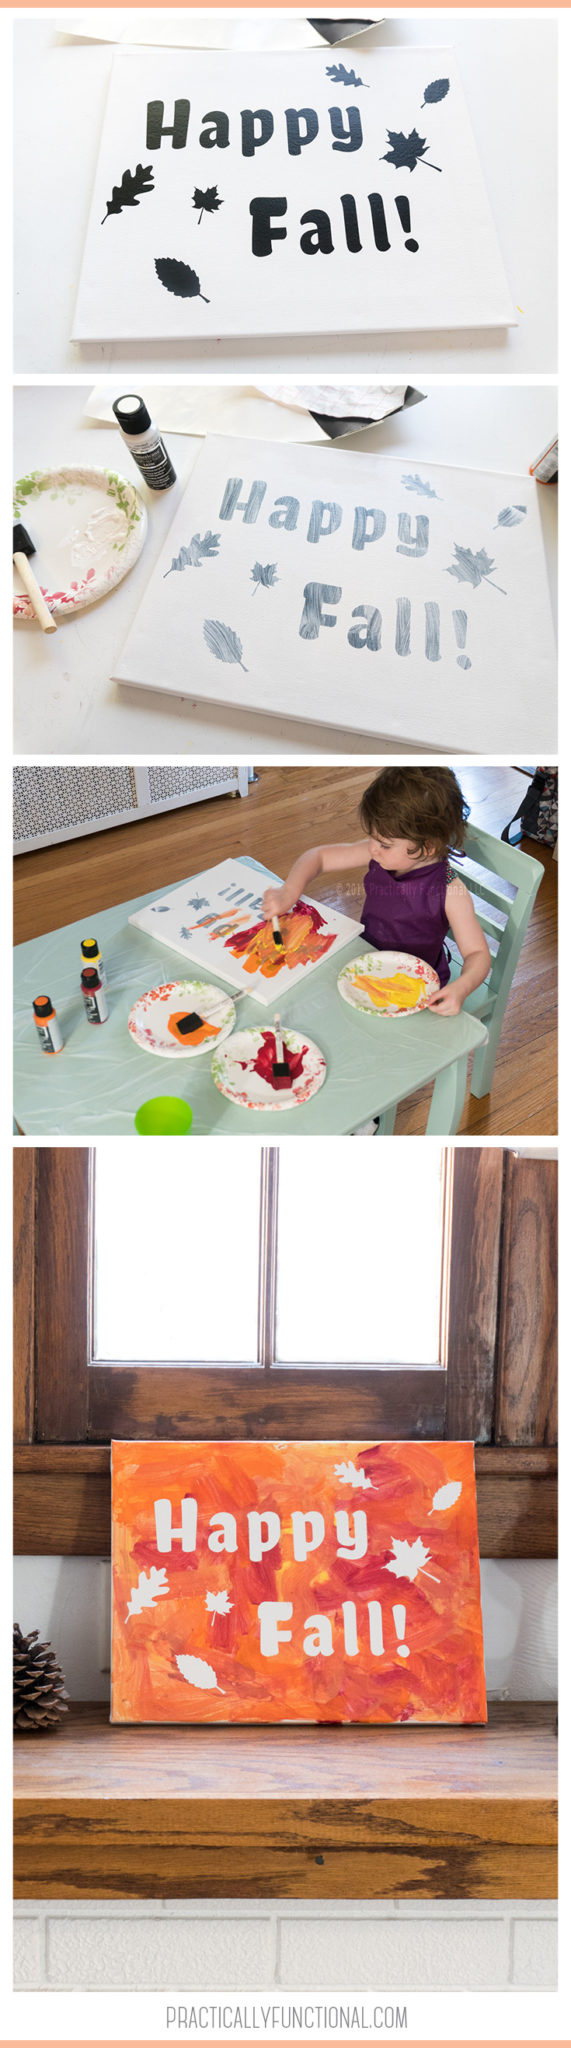 If you're looking for a fun fall painting craft for toddlers to do this year, this one is perfect because it allows them to paint however they want!